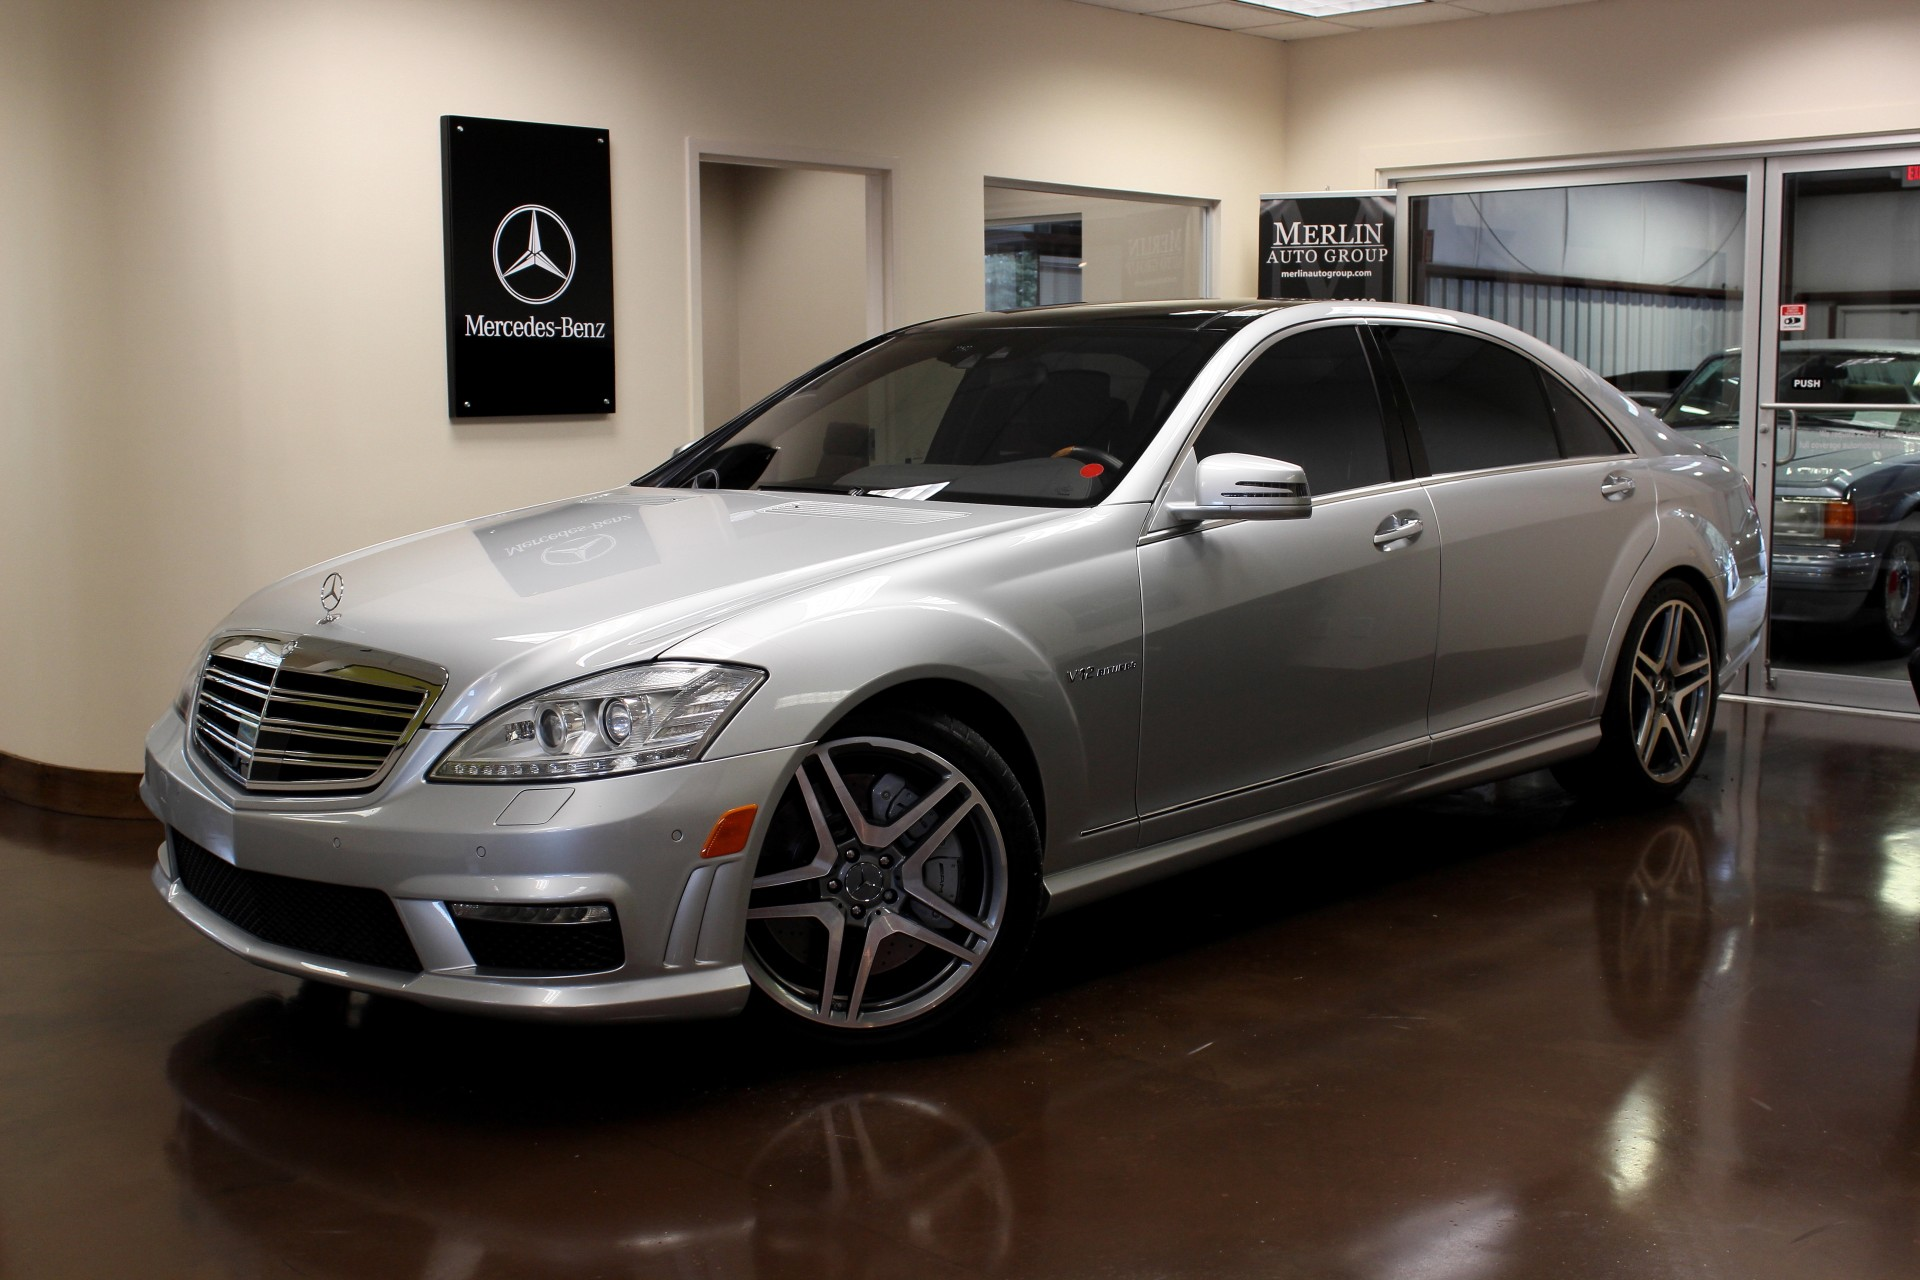 2010 mercedes benz s class for sale in atlanta ga cargurus